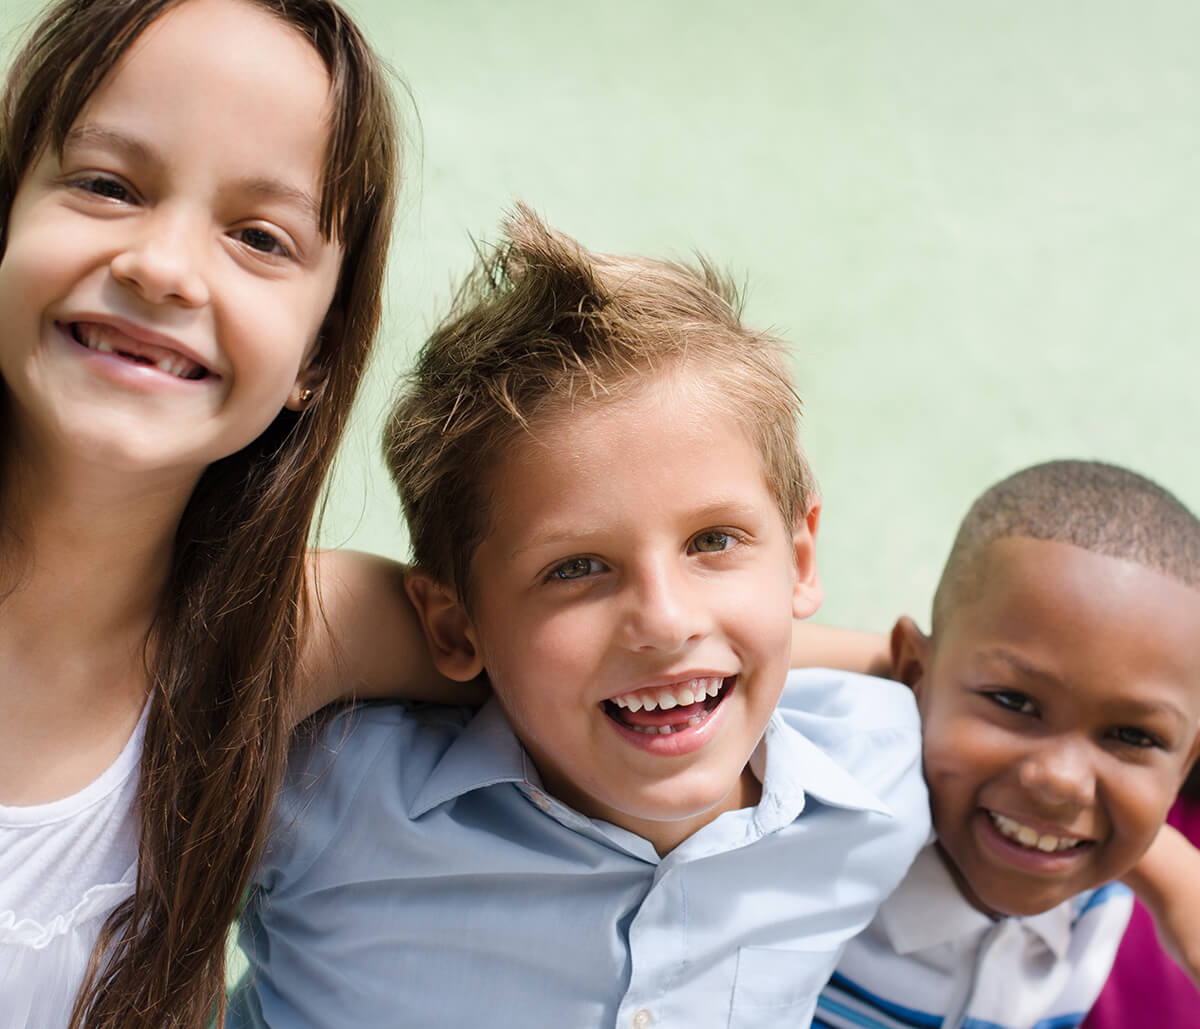 Find a dentist for kids with Houston, TX area professionals